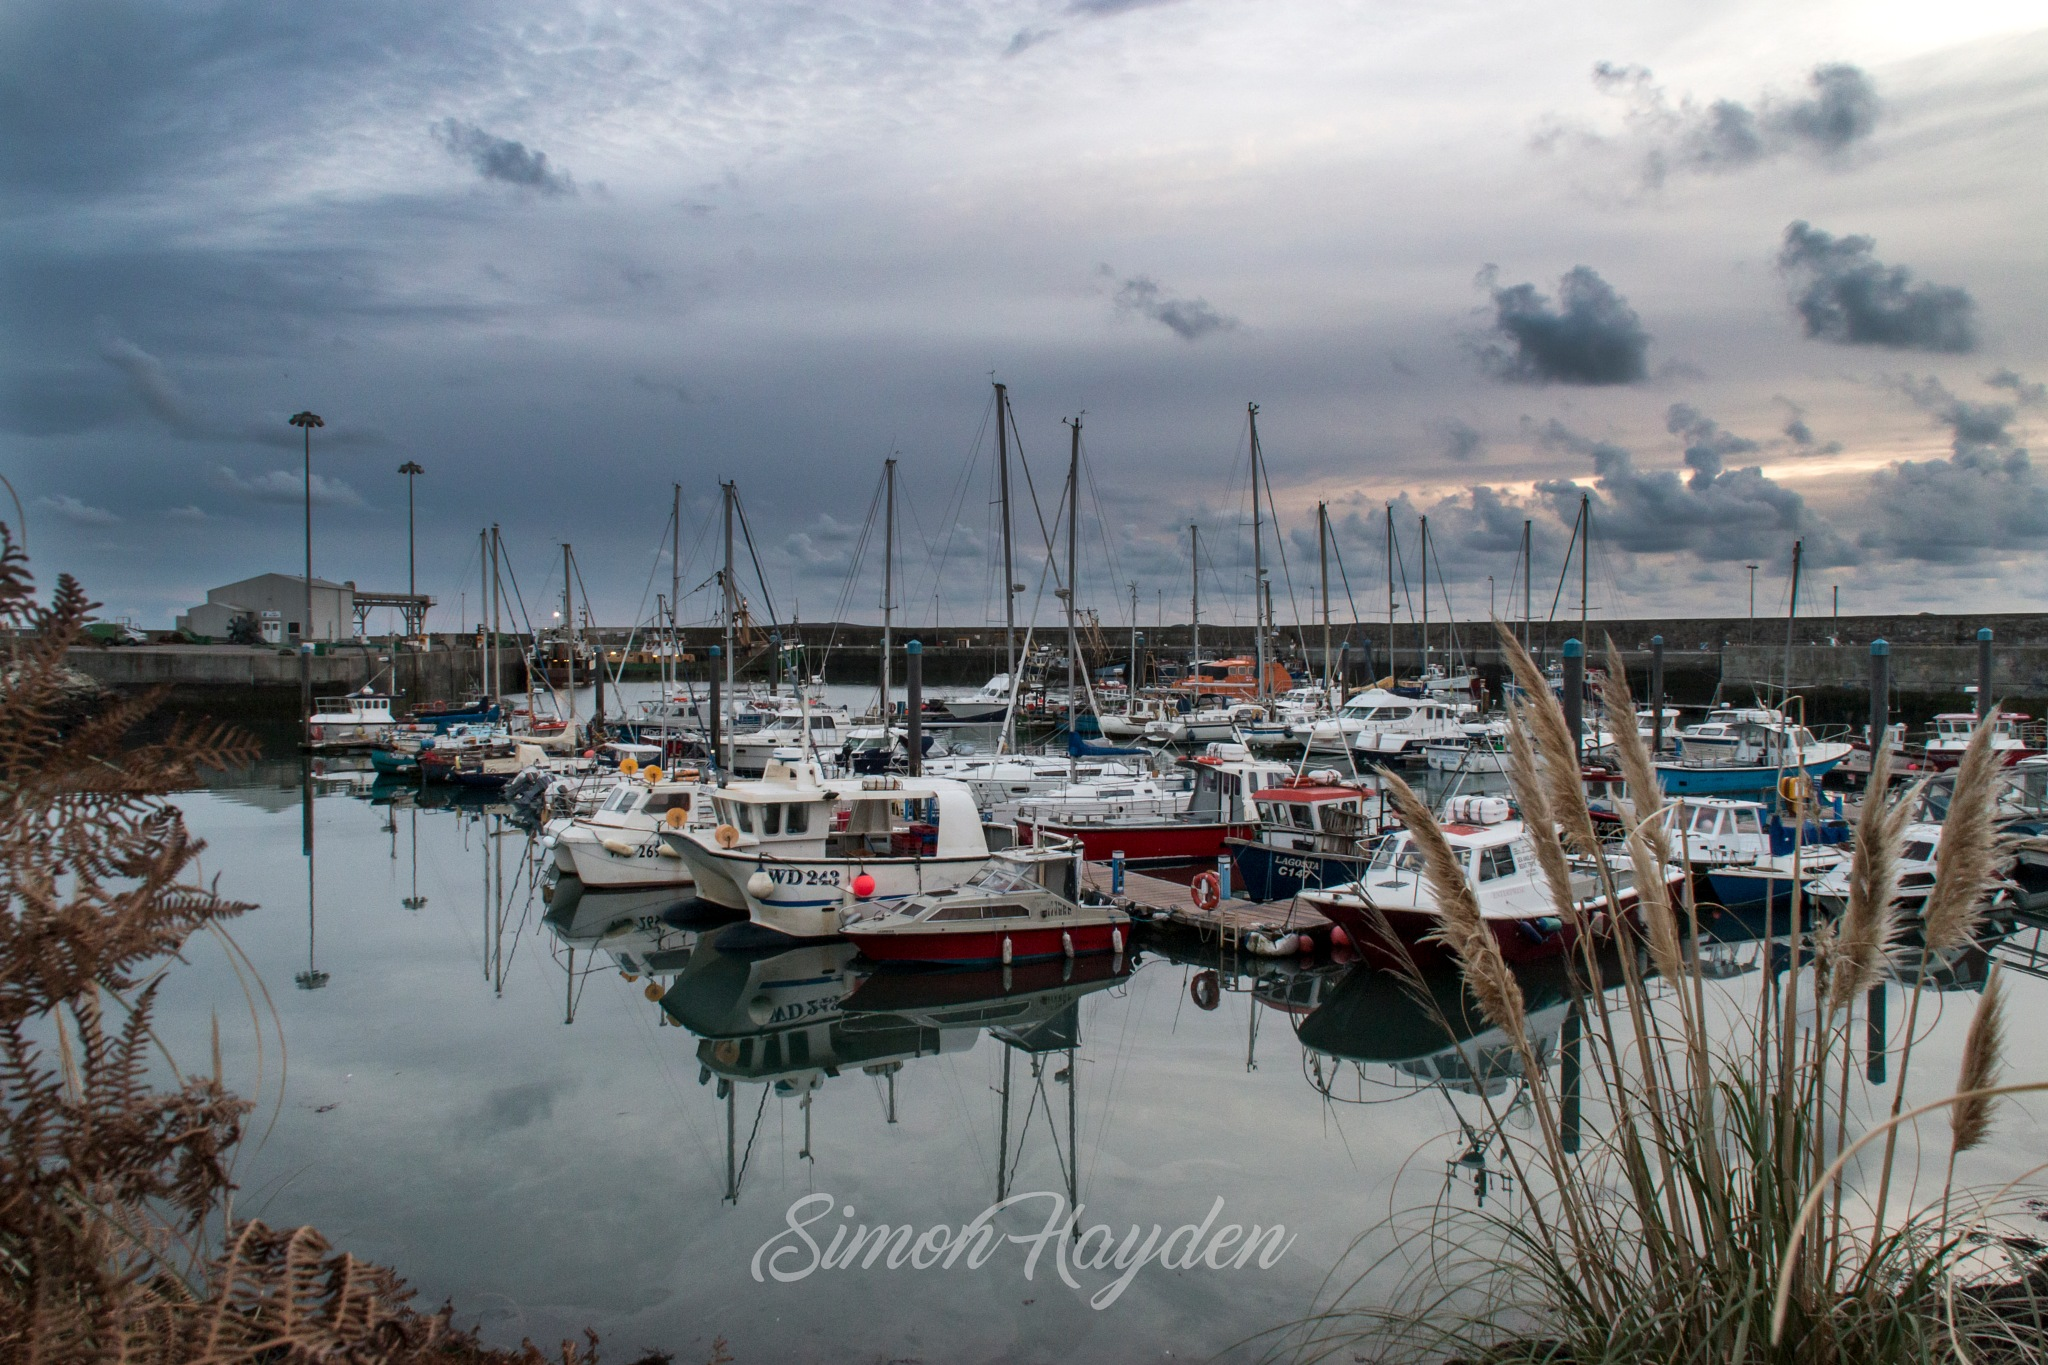 A moment of calm by Simon Hayden